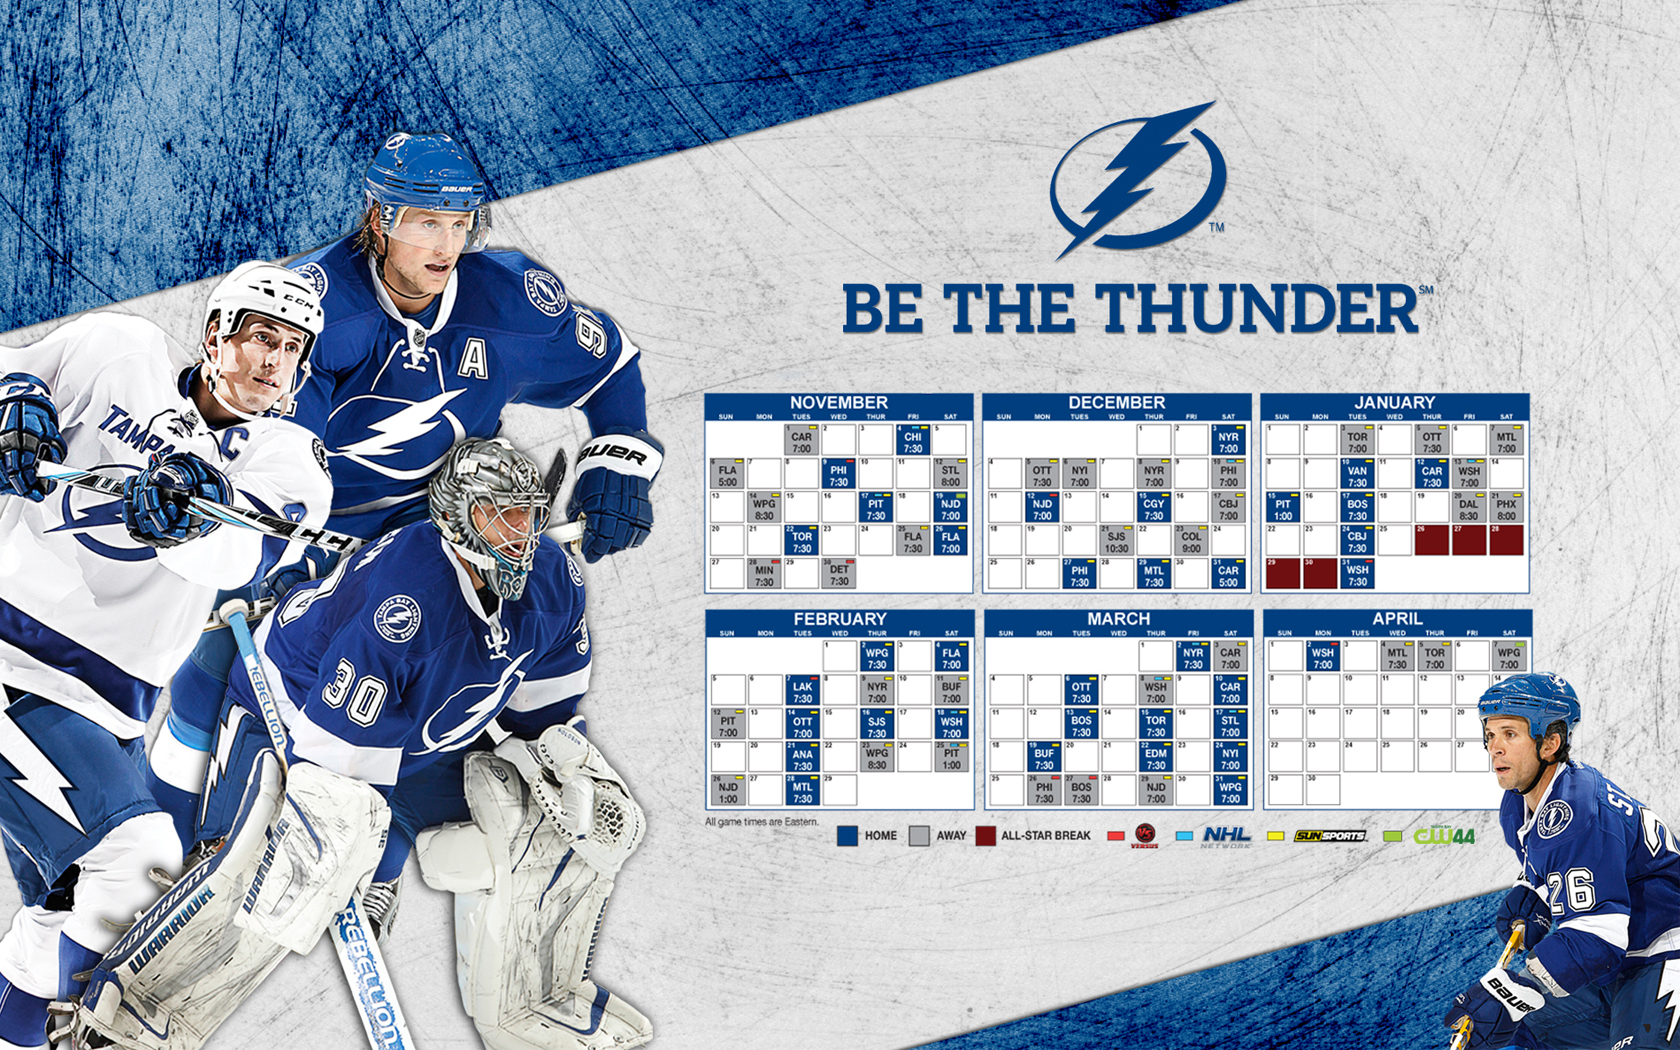 Tampa Bay Lightning images TBL 2011 12 Schedule HD wallpaper and 1680x1050